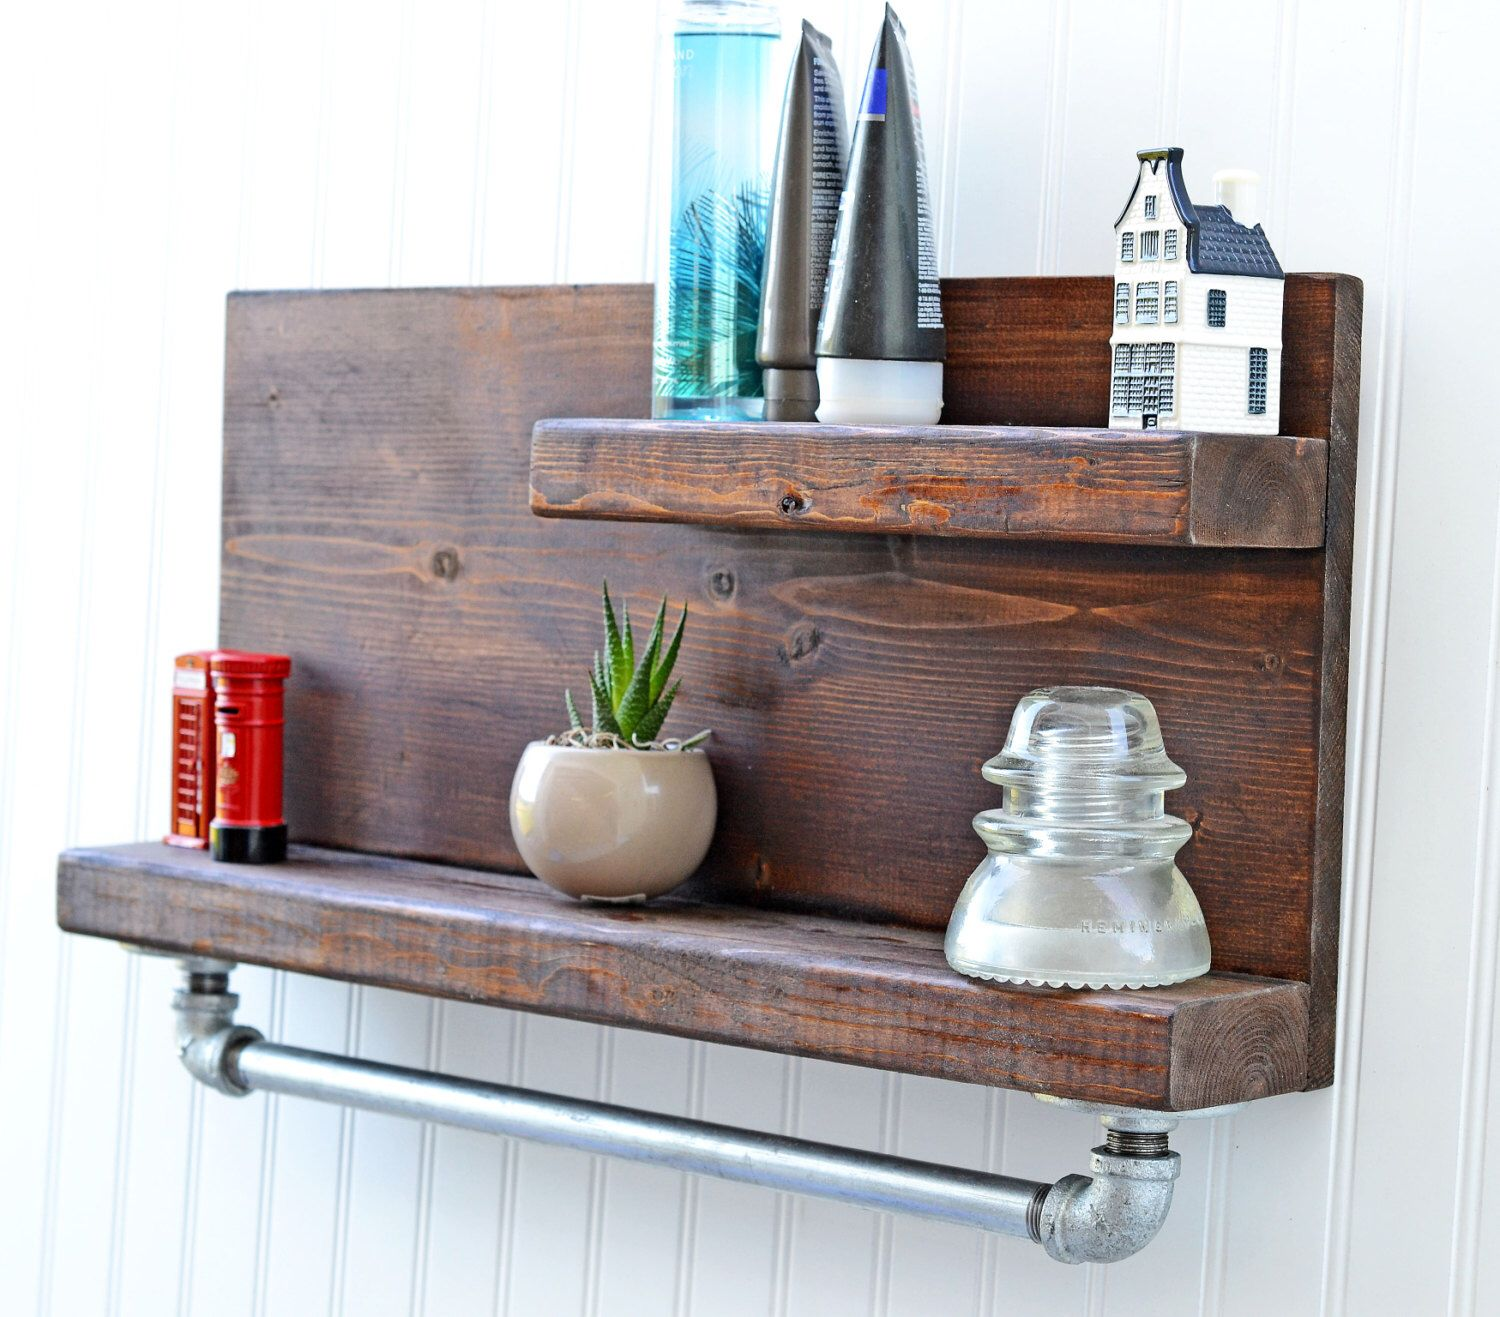 glamorous bathroom towel rack decorating ideas | Pin by Amy Ward on DIY and crafts | Rustic wall shelves ...